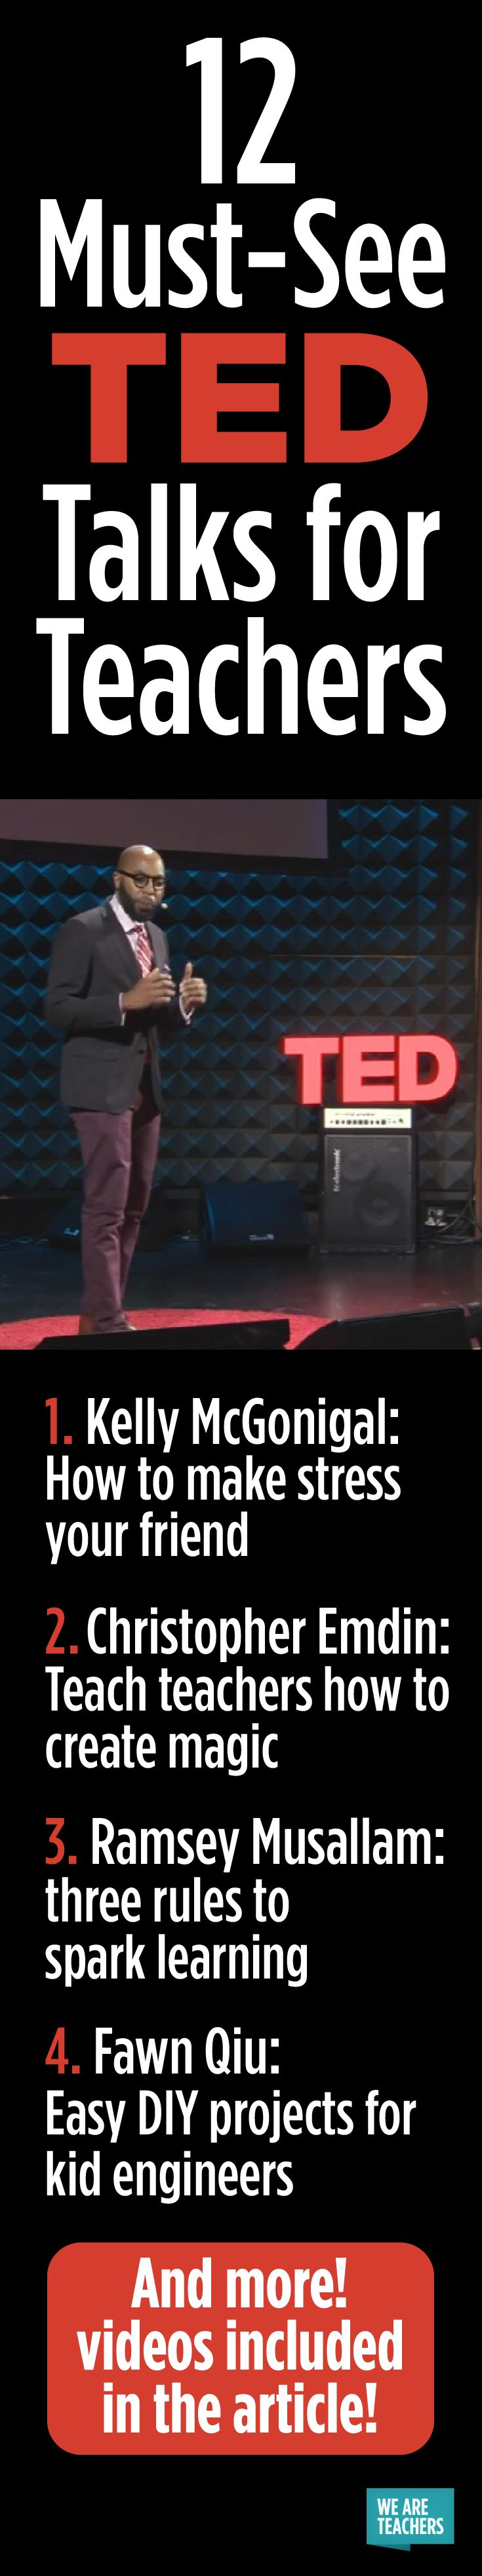 12 Must-See TED Talks for Teachers - WeAreTeachers